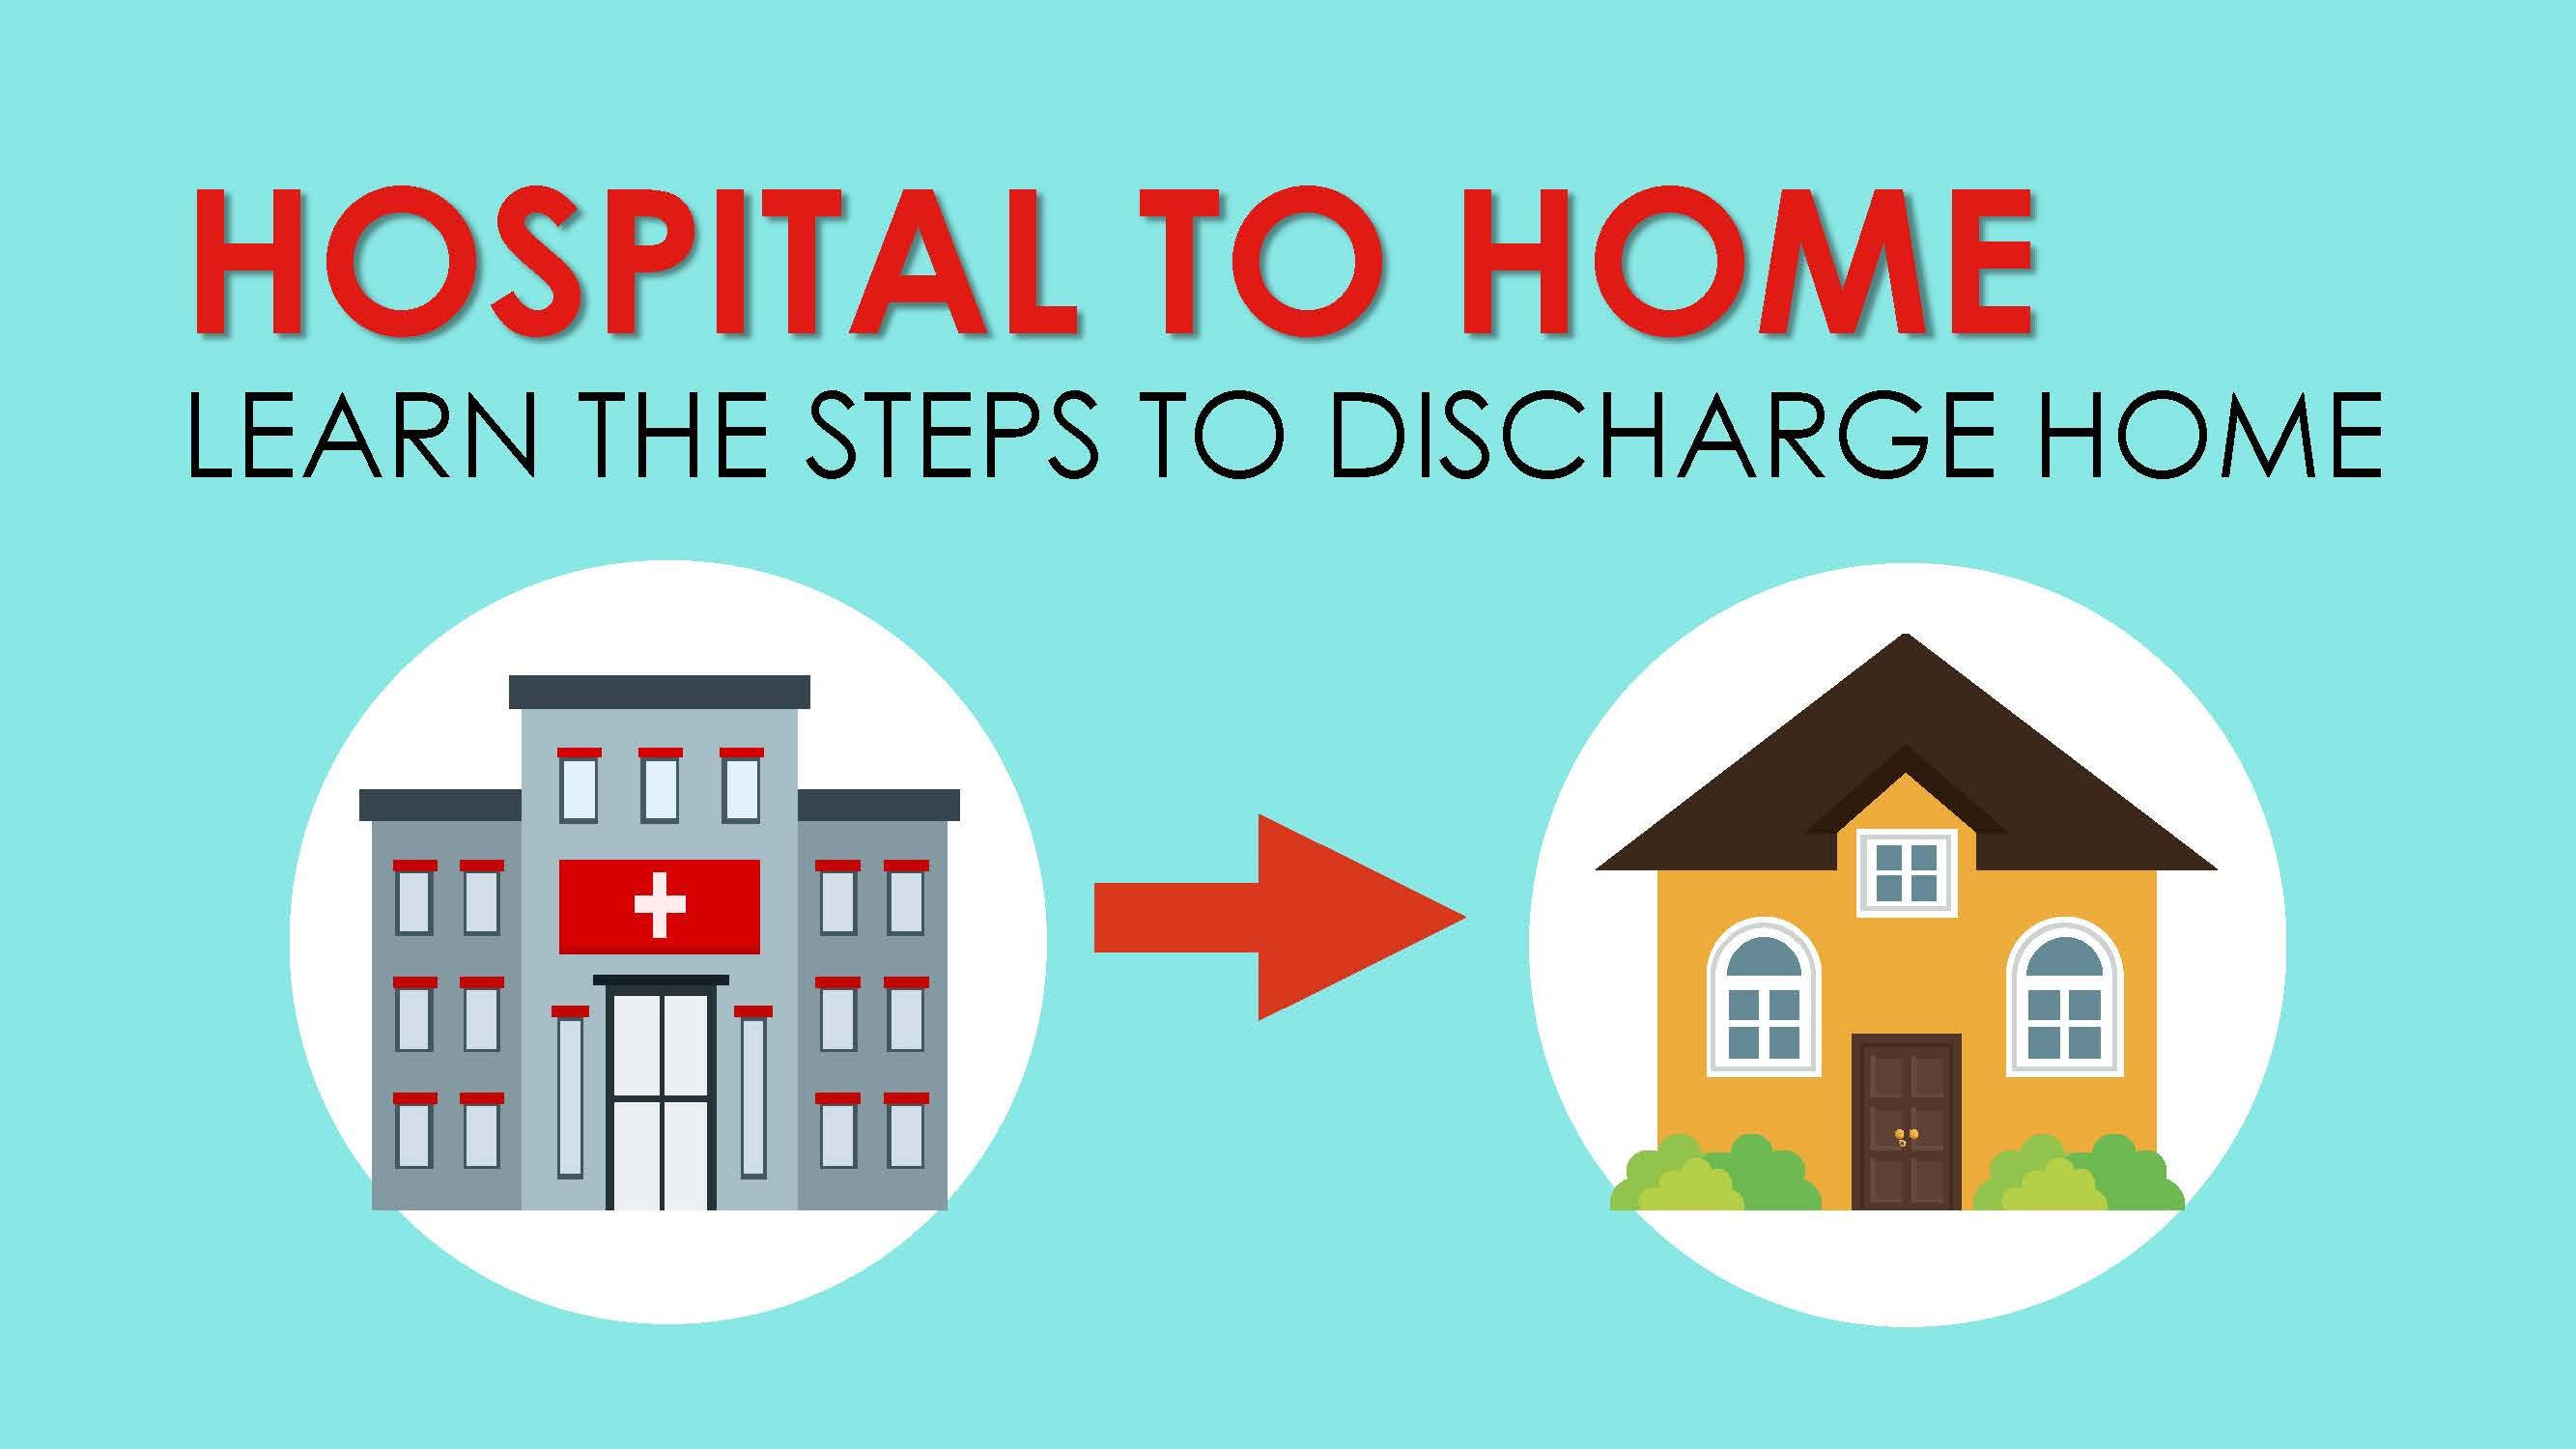 INFOGRAPHIC: Hospital to Home Step-By-Step Guide